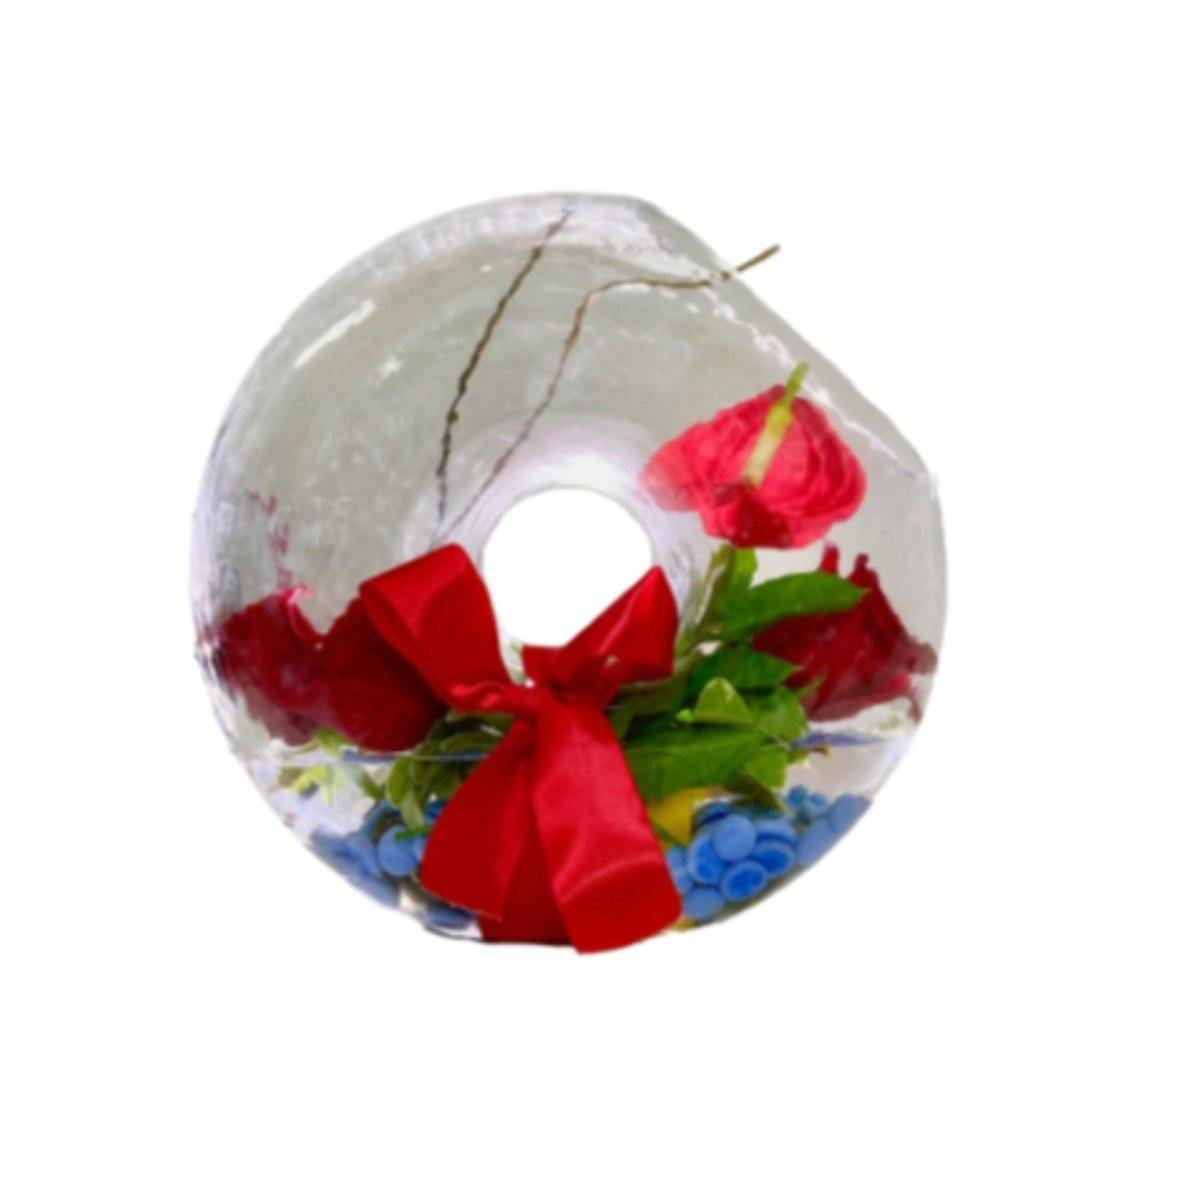 Earth's Gift Arrangement in a Donut Shaped Vase - Shalimar Flower Shop